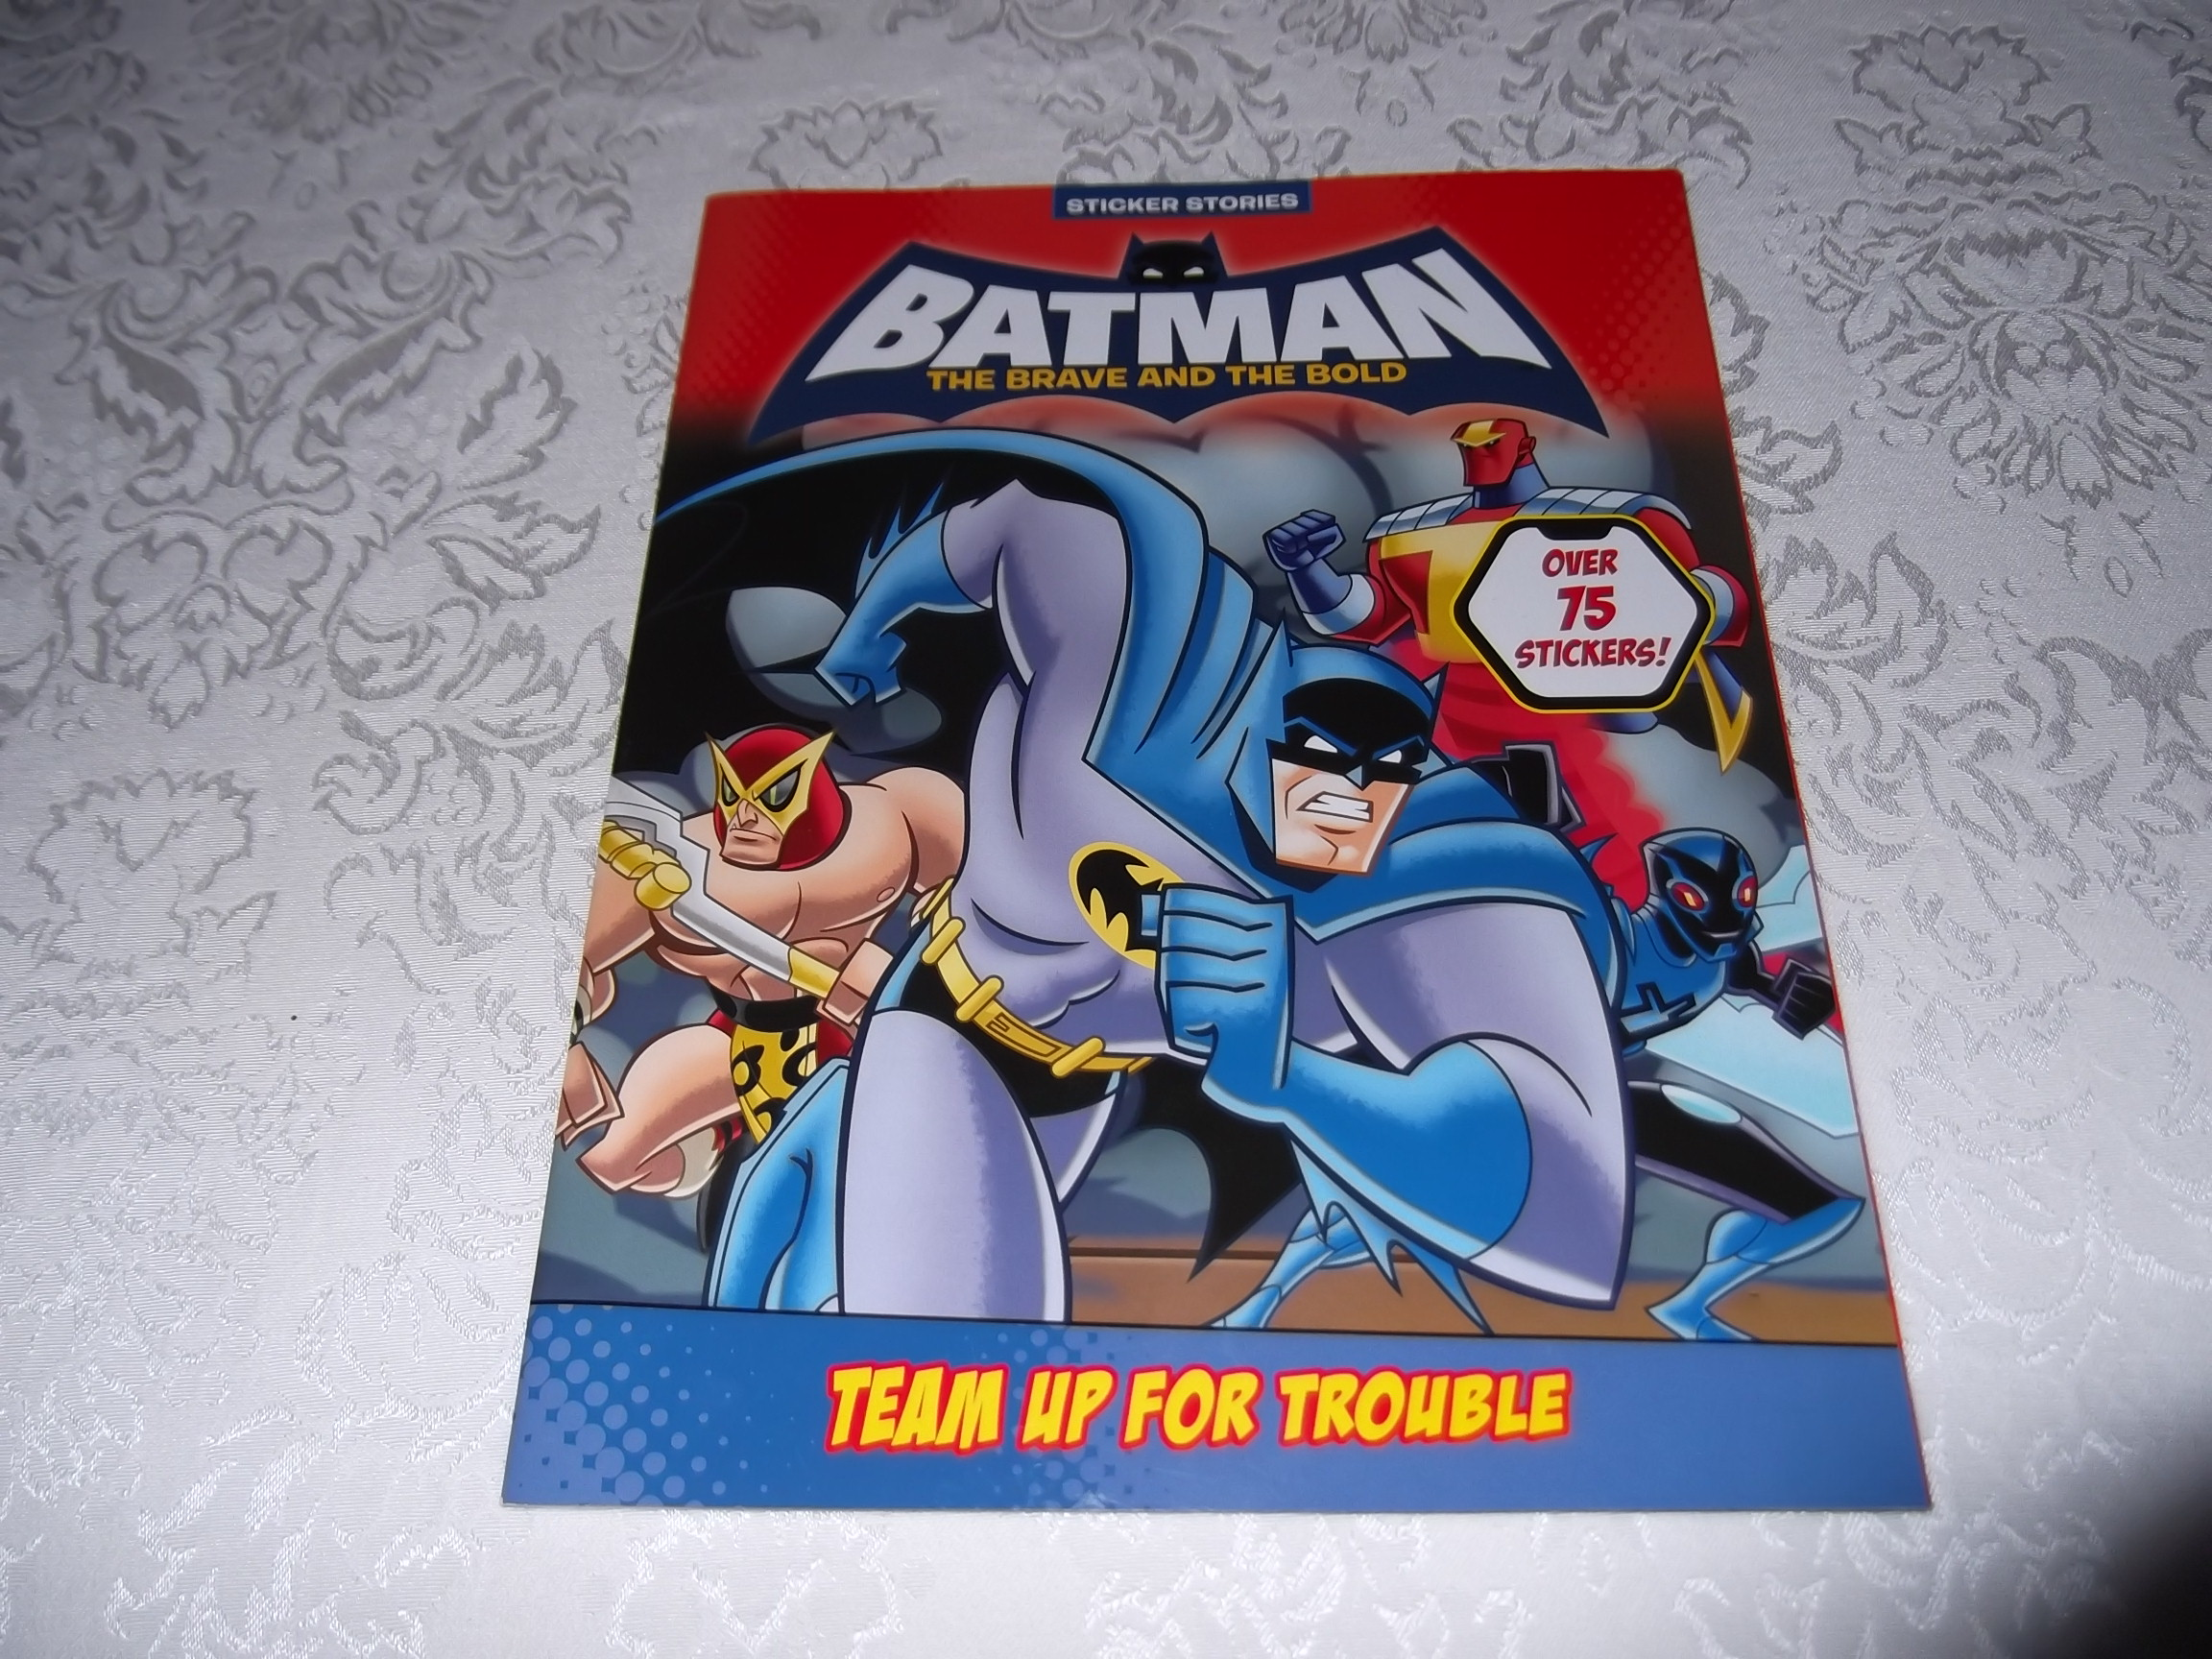 Batman The Brave And The Bold Sticker Activity Book Bob Kane Brand New SC